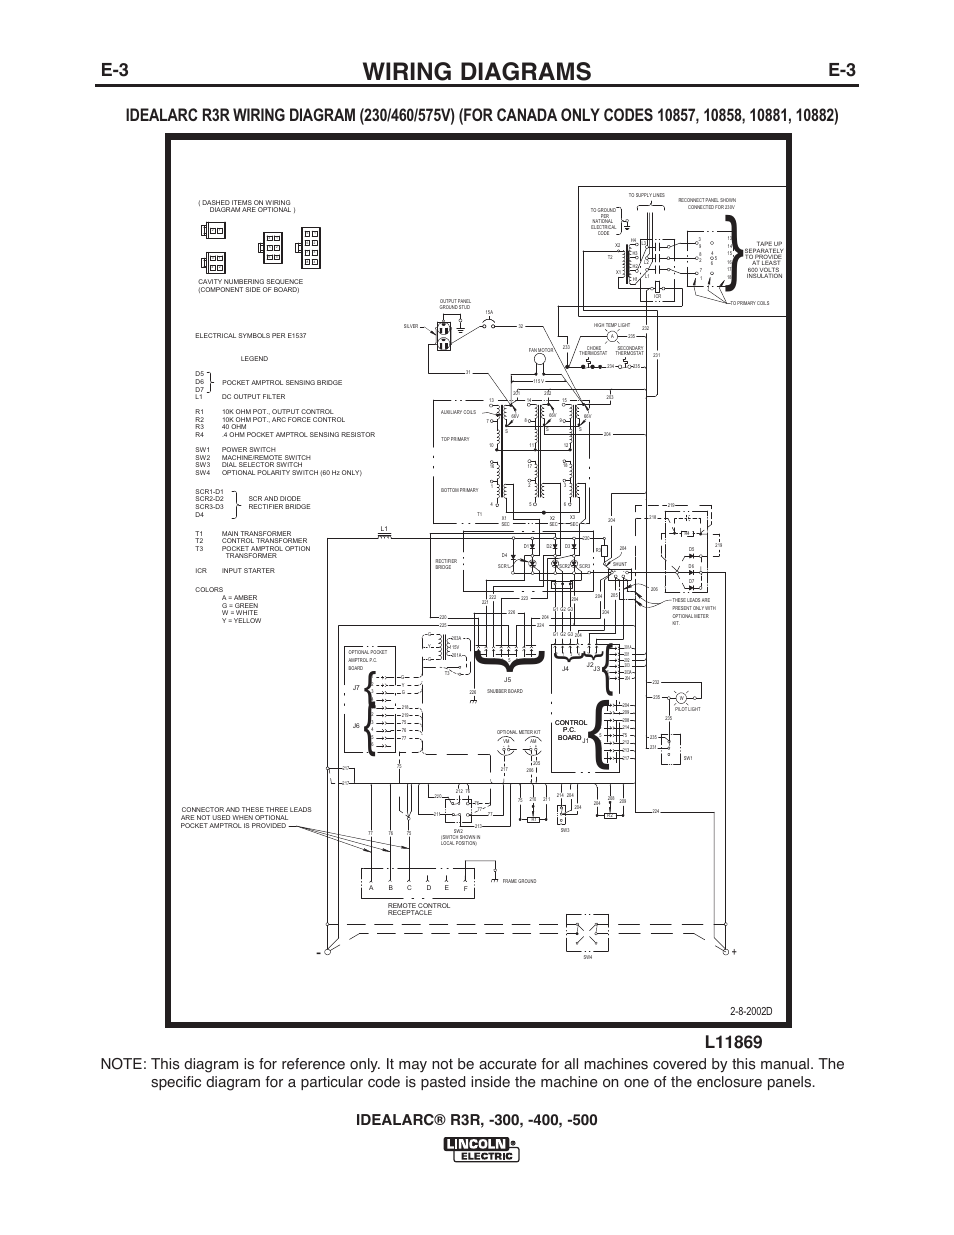 wiring diagrams | lincoln electric im409 idealarc r3r-400 user manual |  page 25 / 32  manuals directory